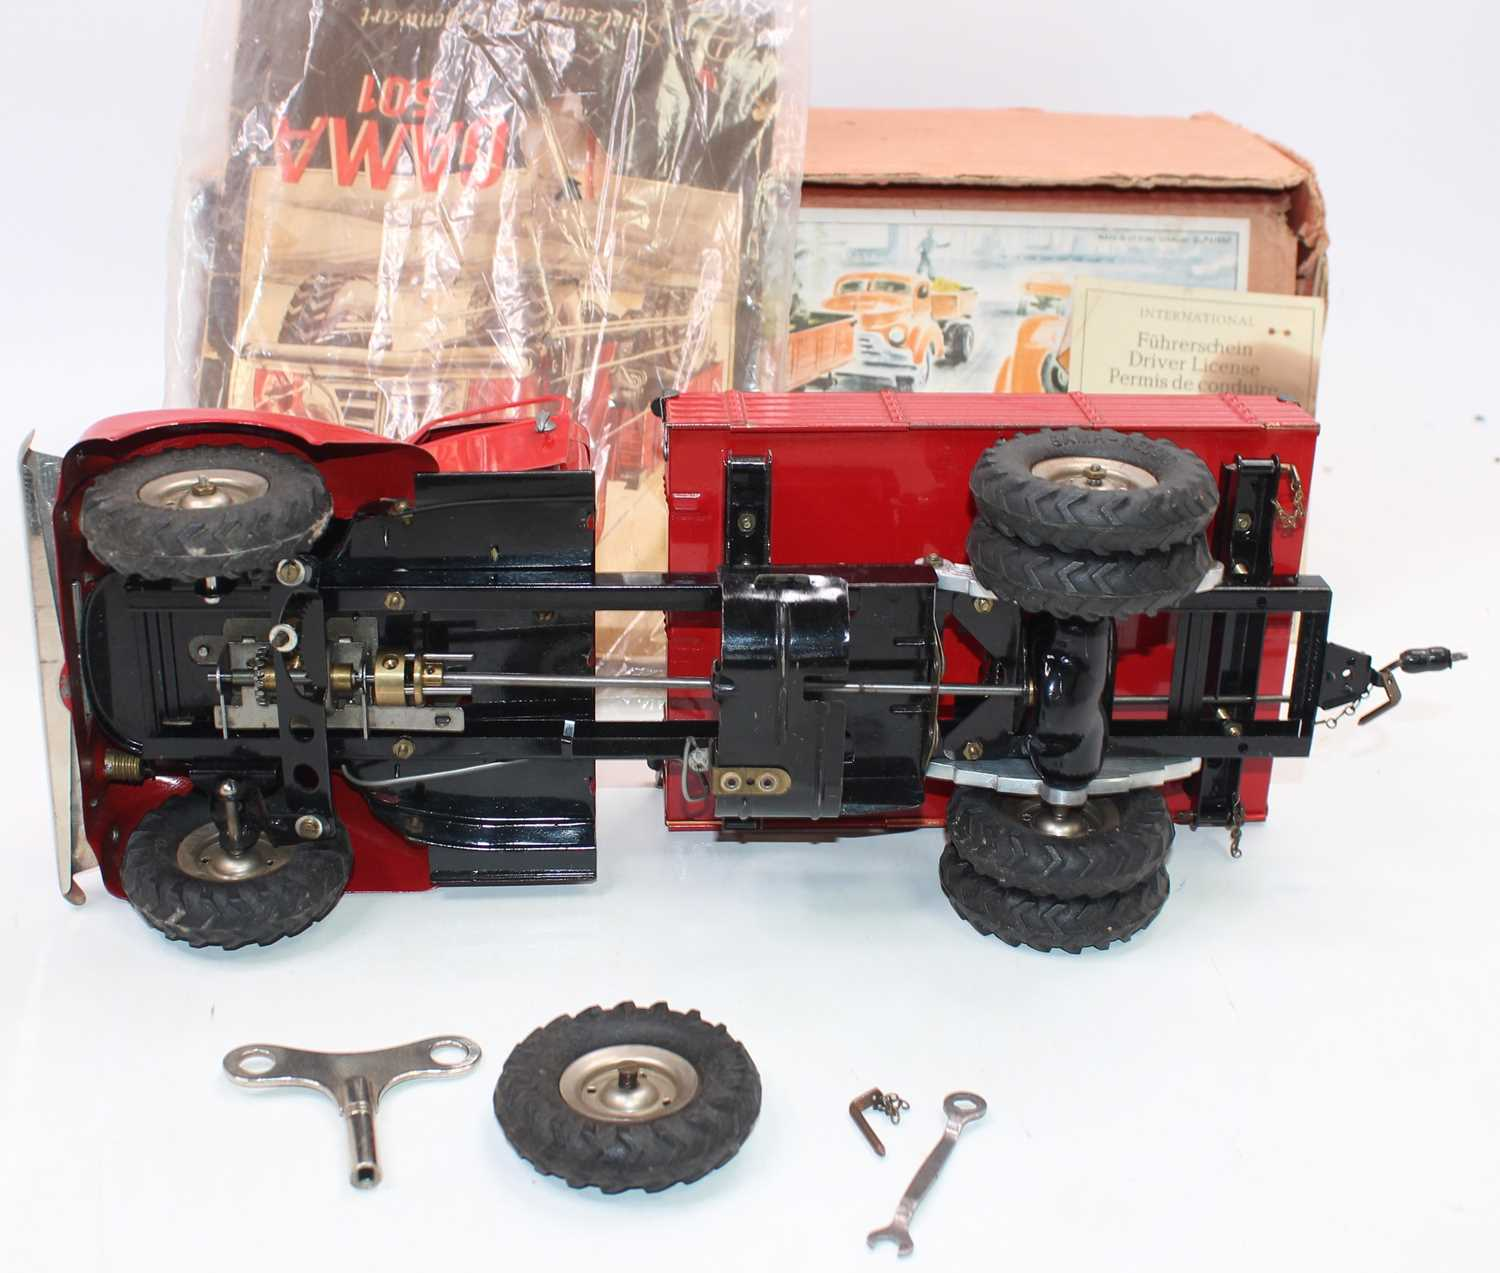 Gama No.501 battery operated and tinplate tipping truck, comprising red cab and back, black chassis, - Image 5 of 6